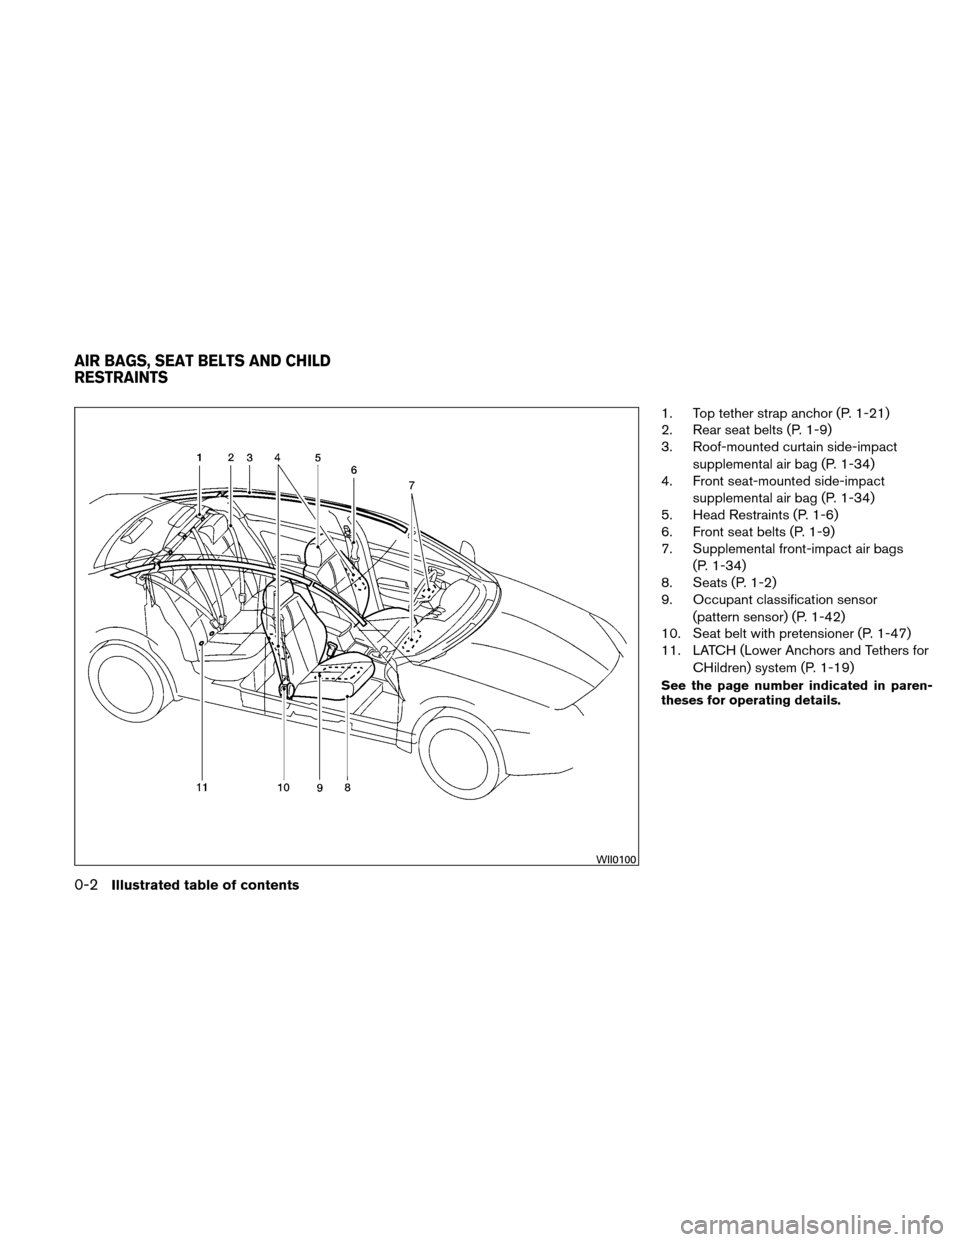 NISSAN ALTIMA HYBRID 2010 L32A / 4.G Owners Manual, Page 21